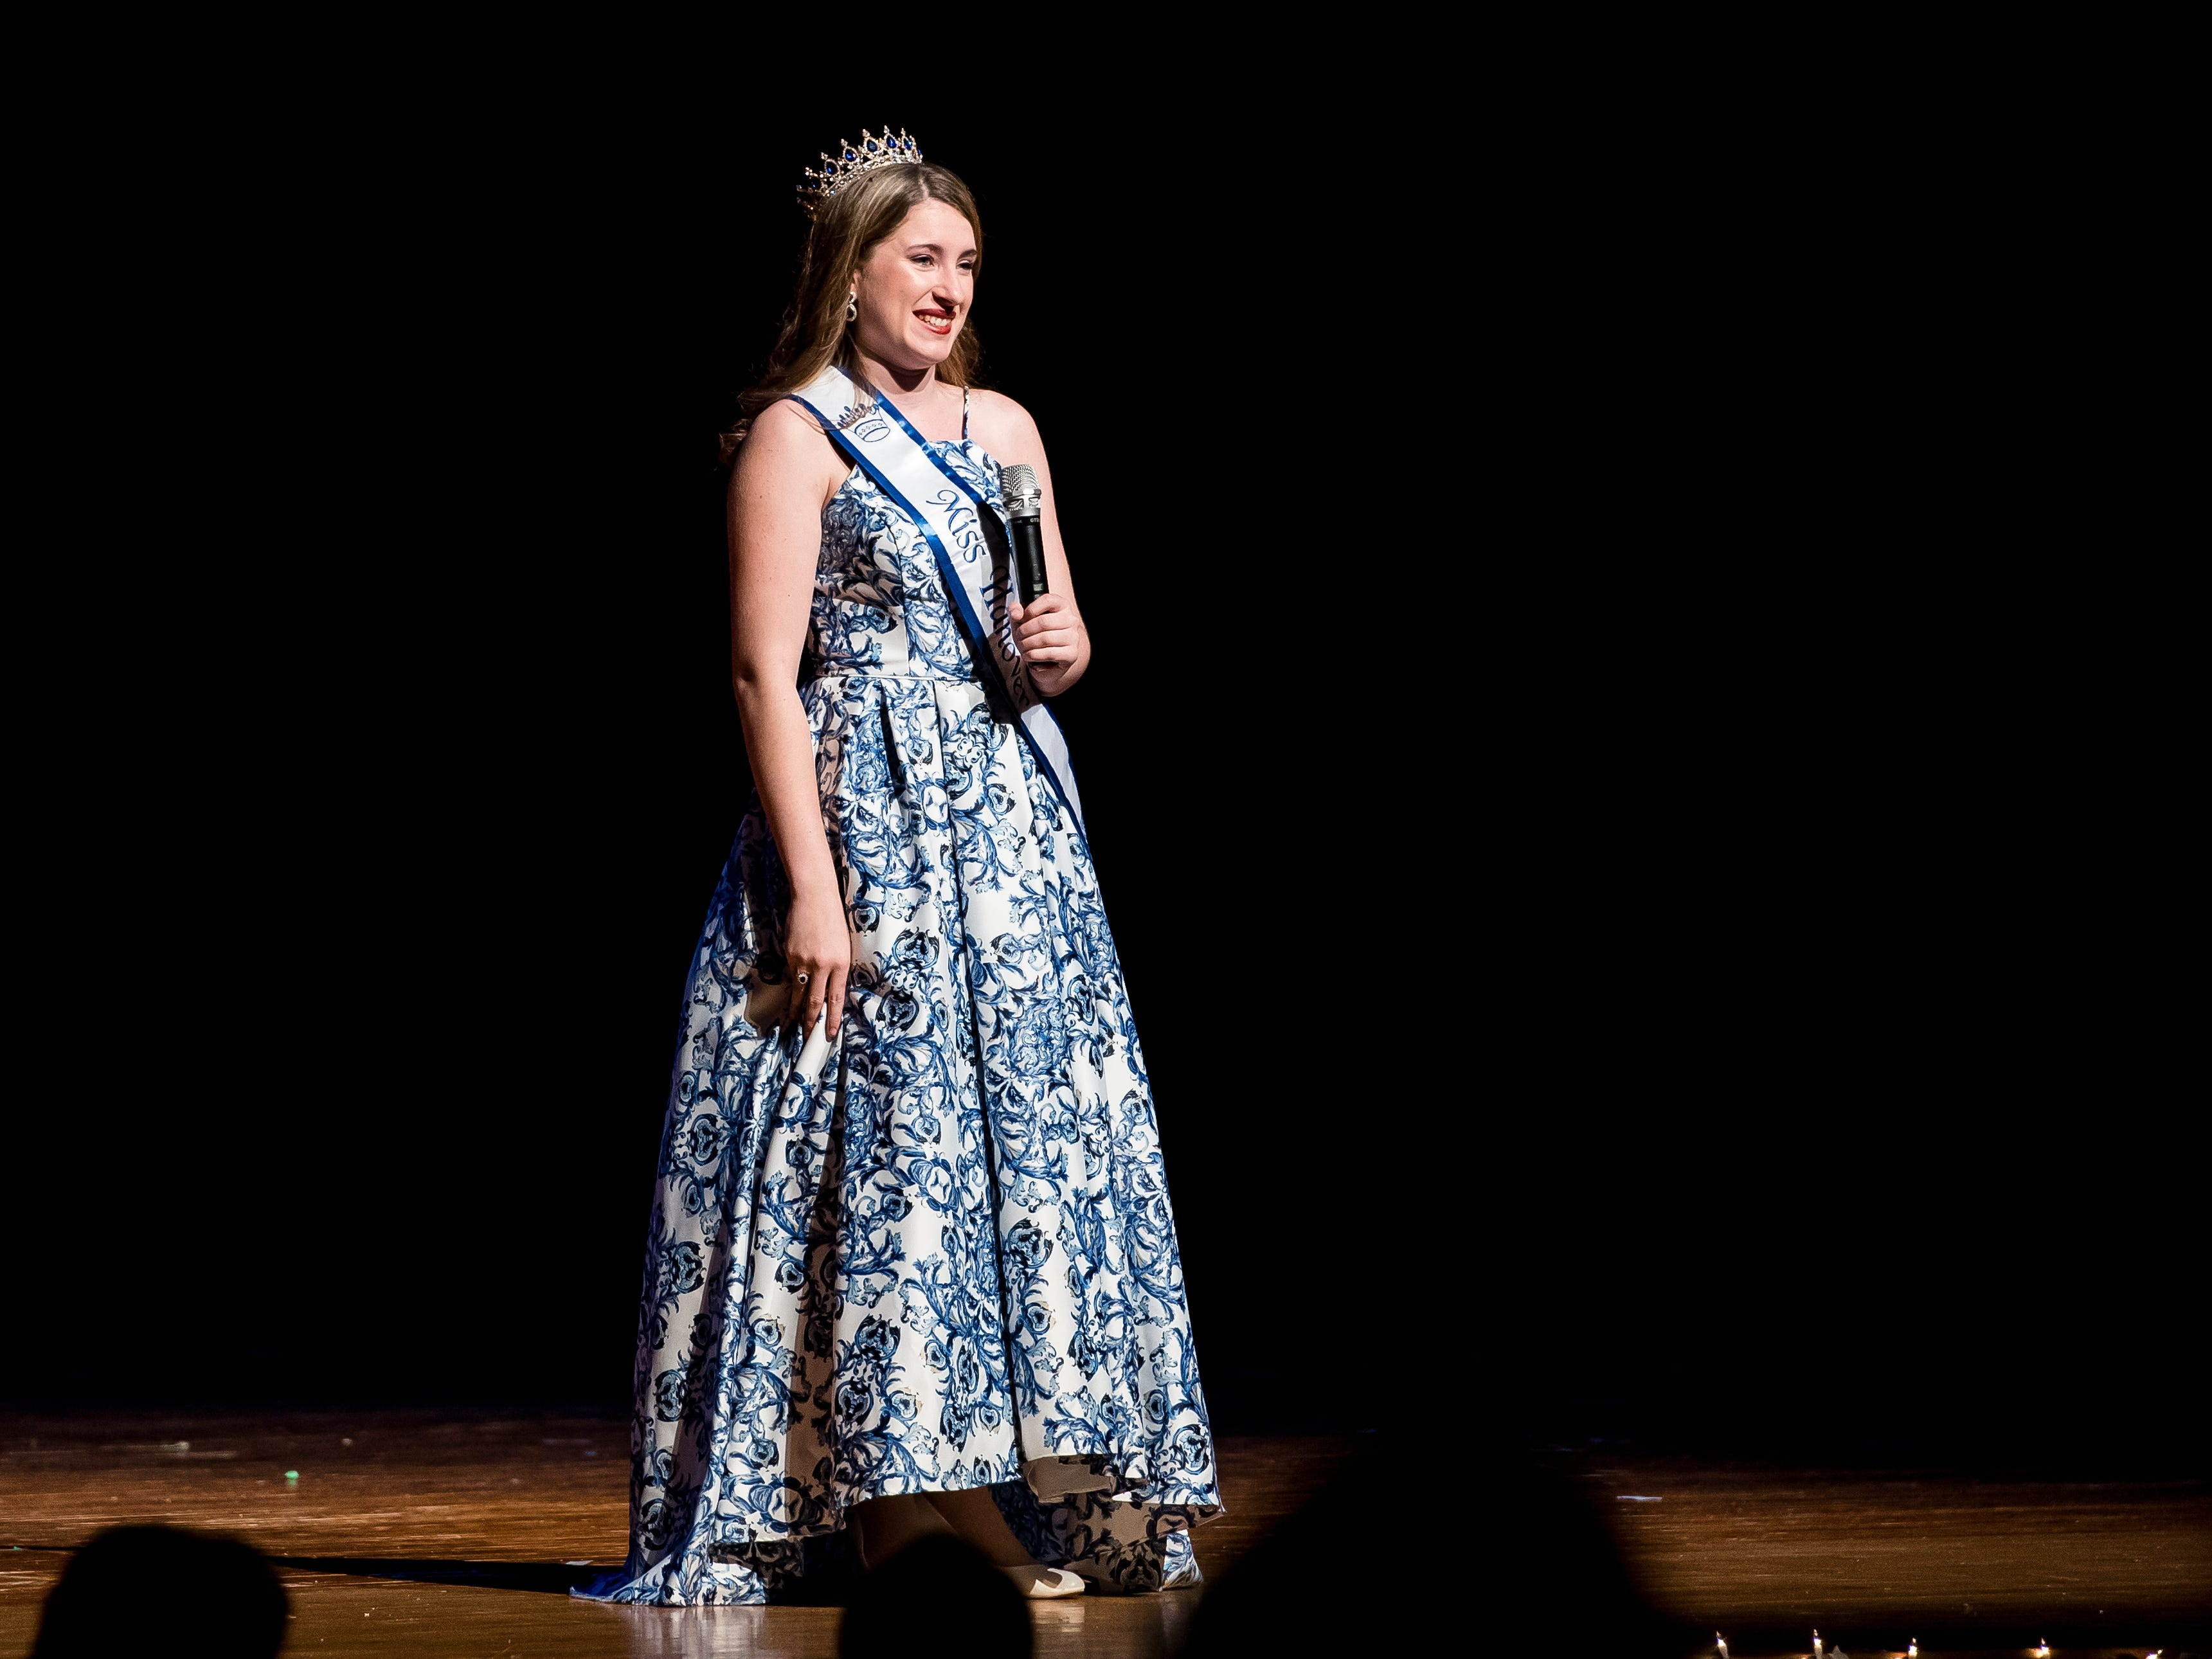 Marley Bradner, Miss Hanover Area 2017-2018, sings during the 50th Miss Hanover Area pageant at New Oxford High School on Monday, October 22, 2018.